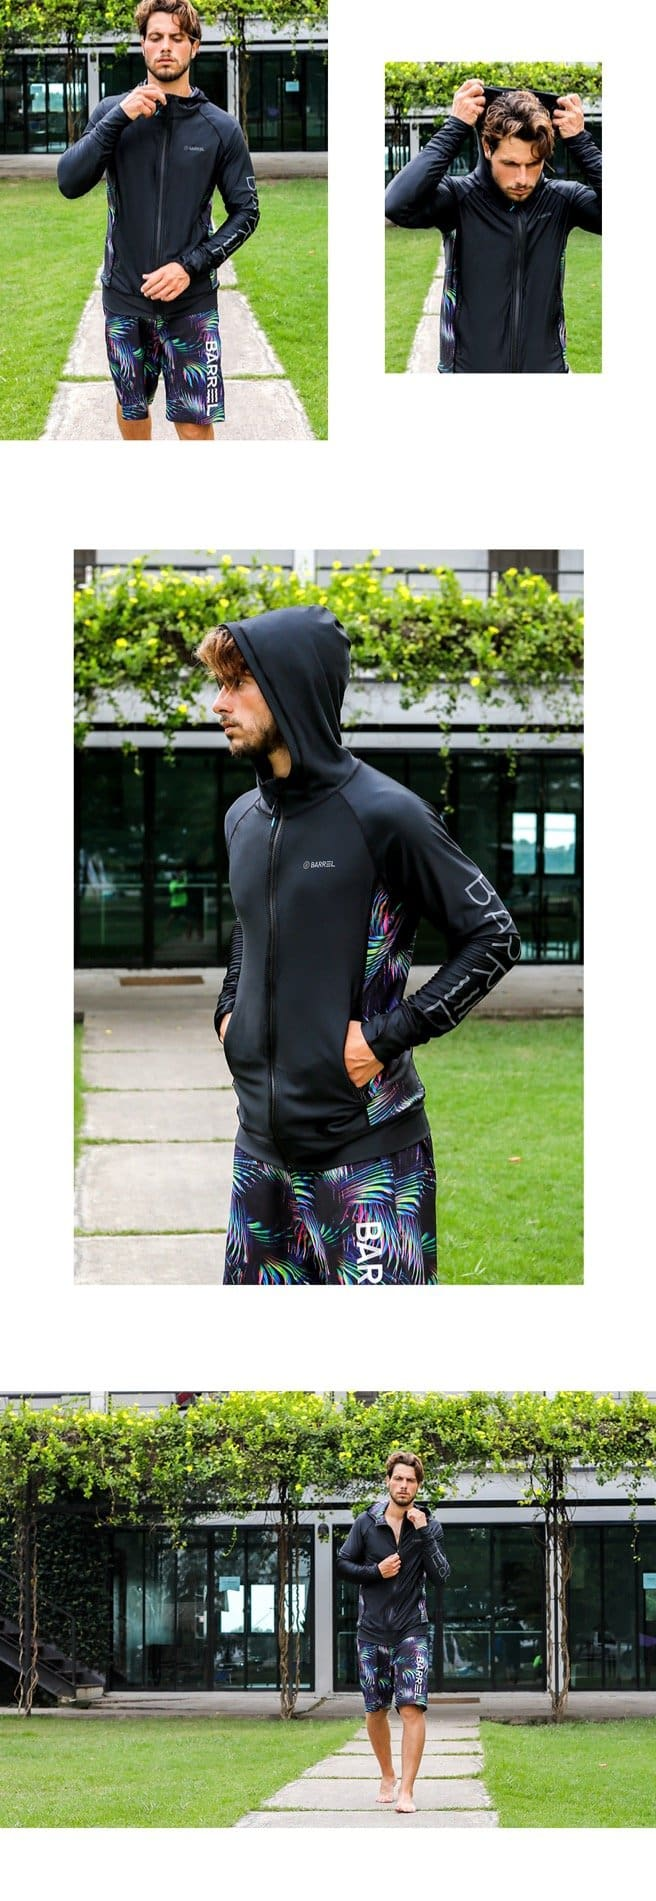 BARREL MENS TULUM ZIP-UP HOODIE RASHGUARD - BLACK/FOREST [KOREAN BRAND]